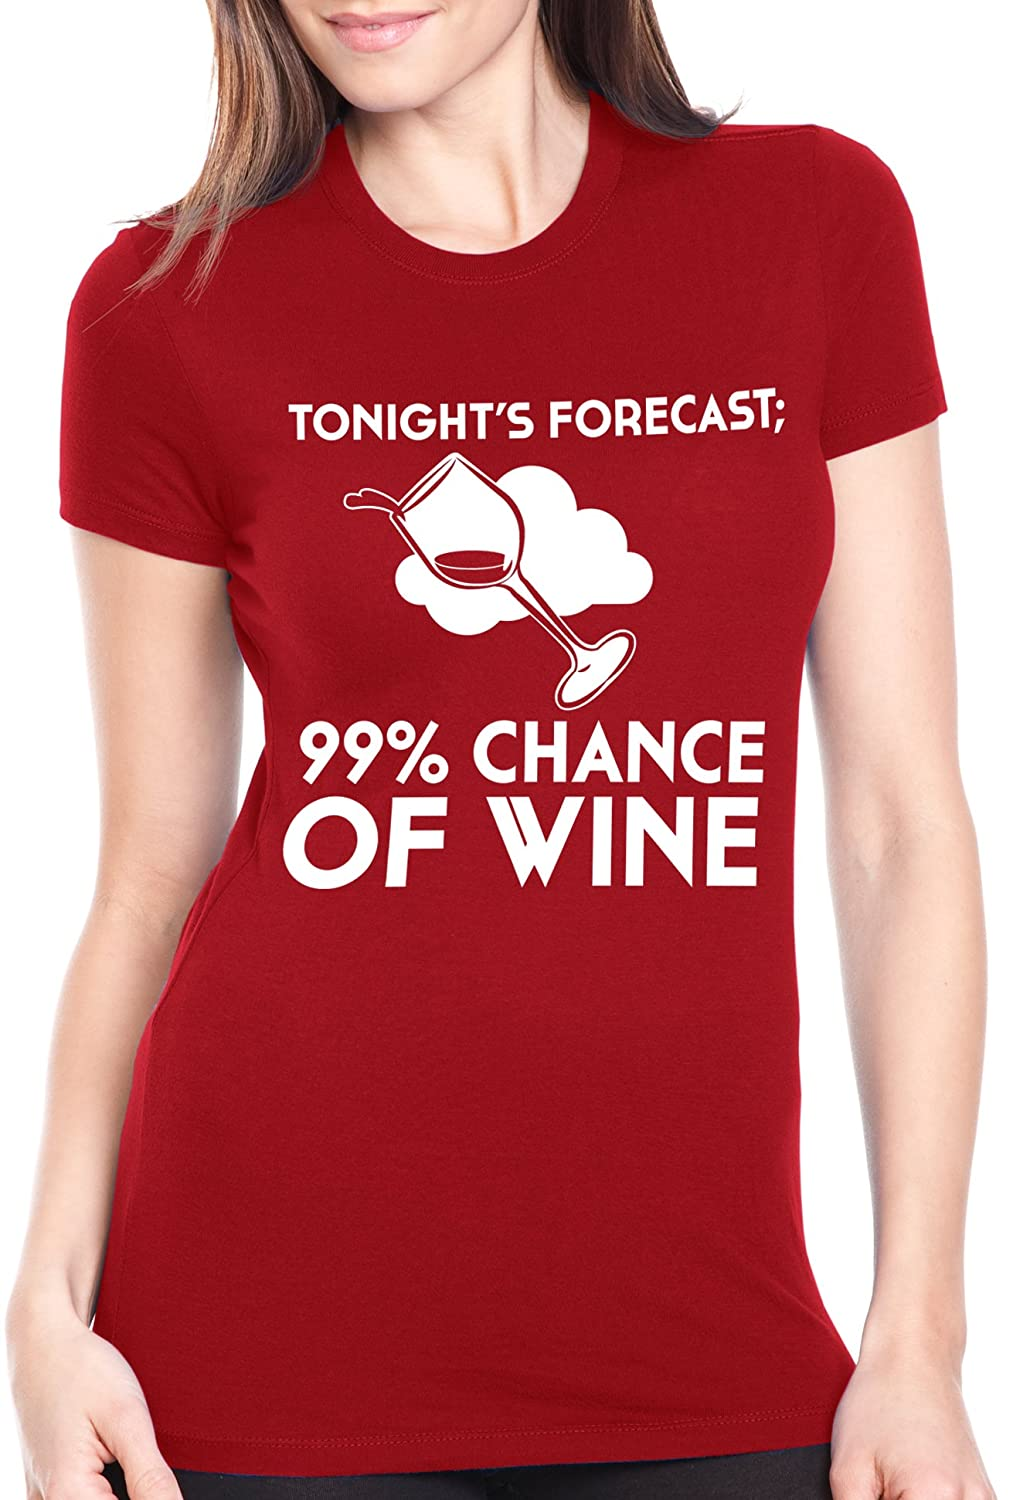 10 shirts for wine lovers blog for Tee shirt printing near me